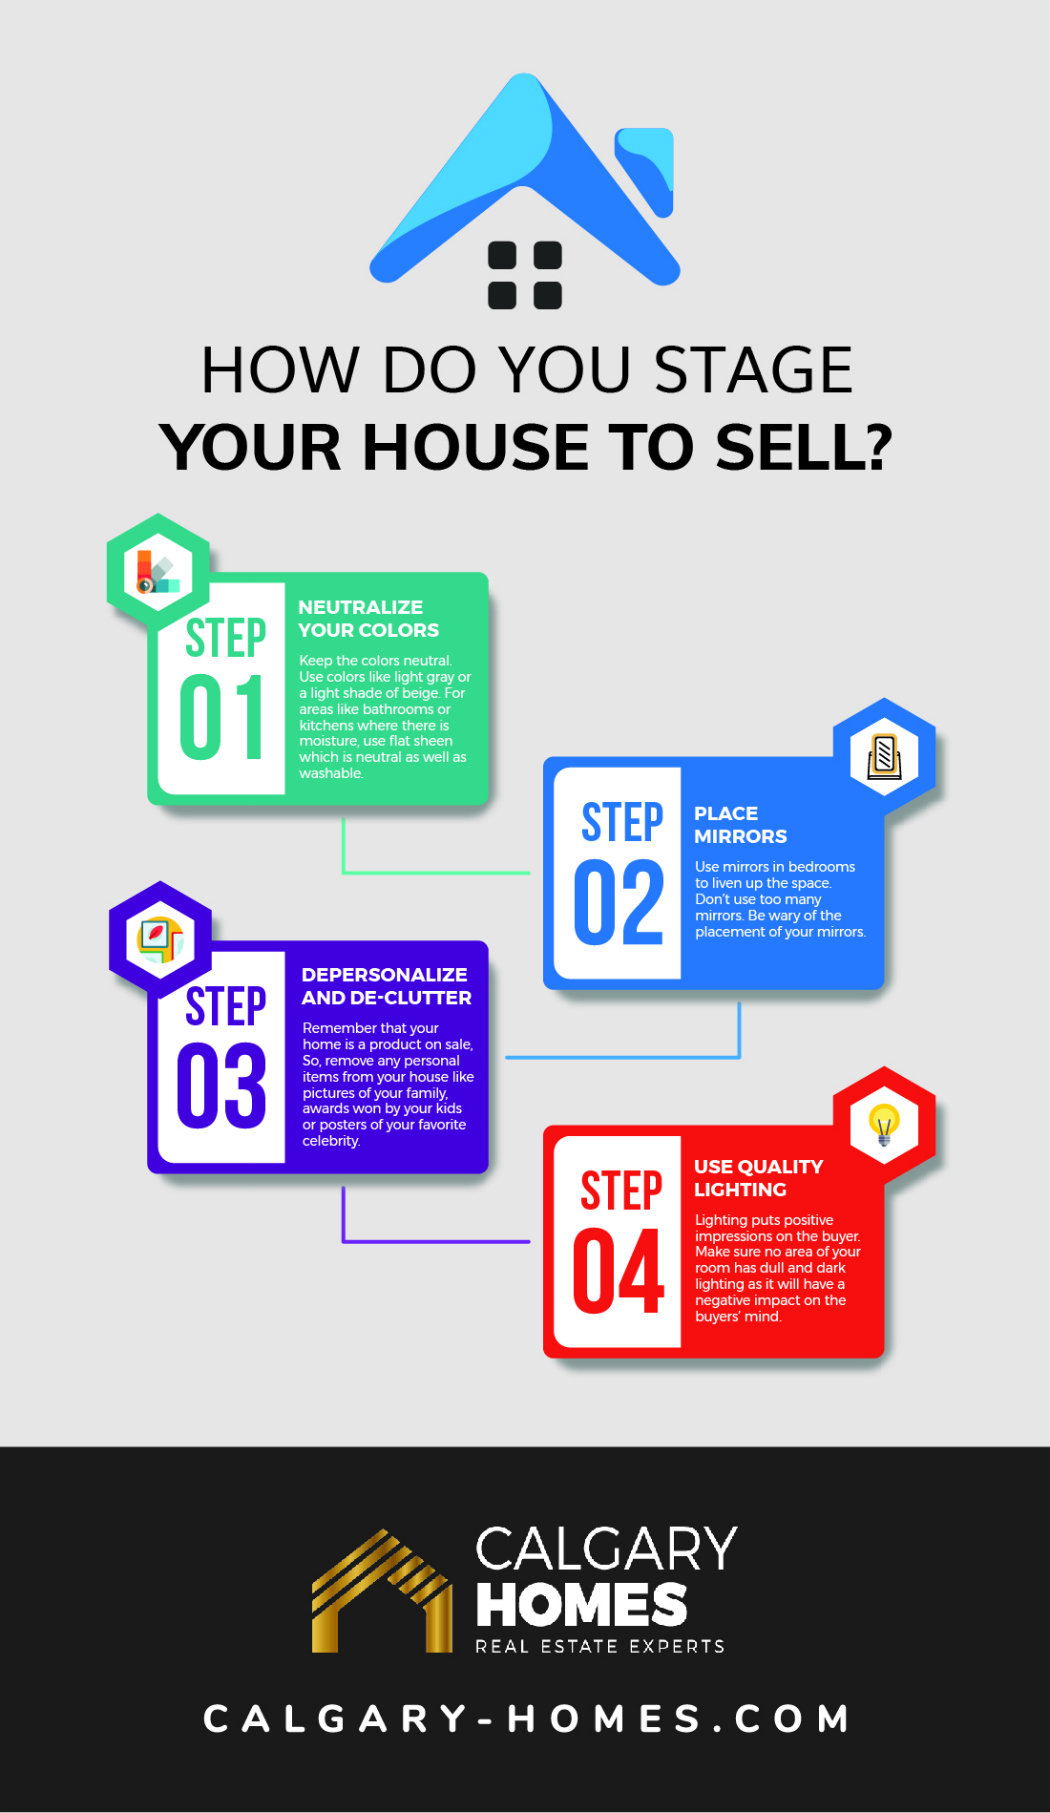 Stage Your House To Sell